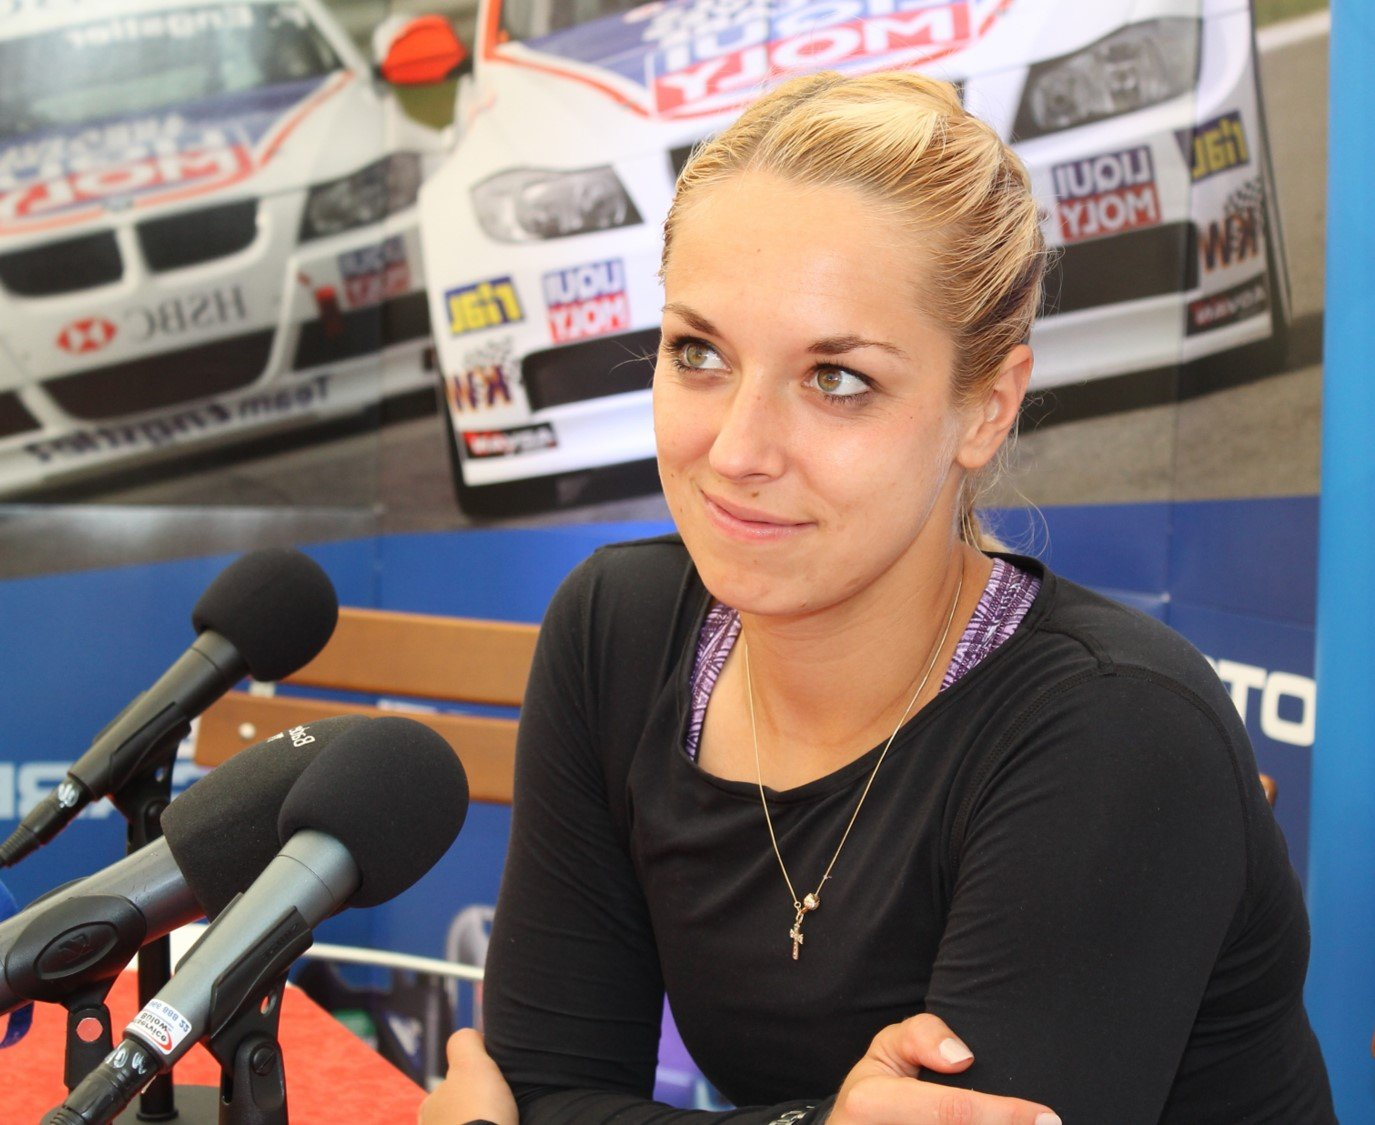 _absolutely_free_photos_original_photos_sabine-lisicki-smile-in-press-conference-4272x2848_24195